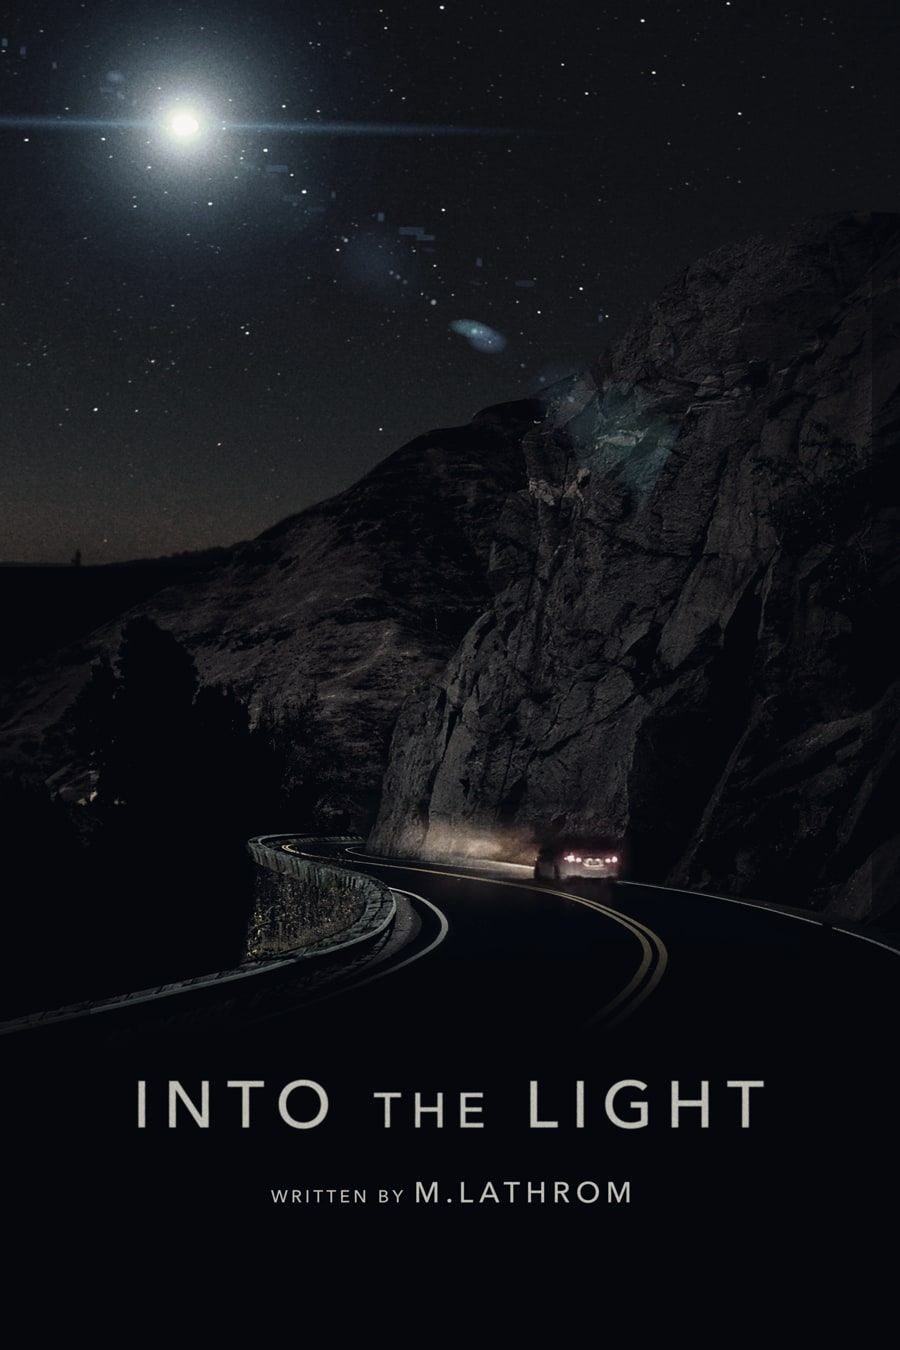 Into The Light Poster